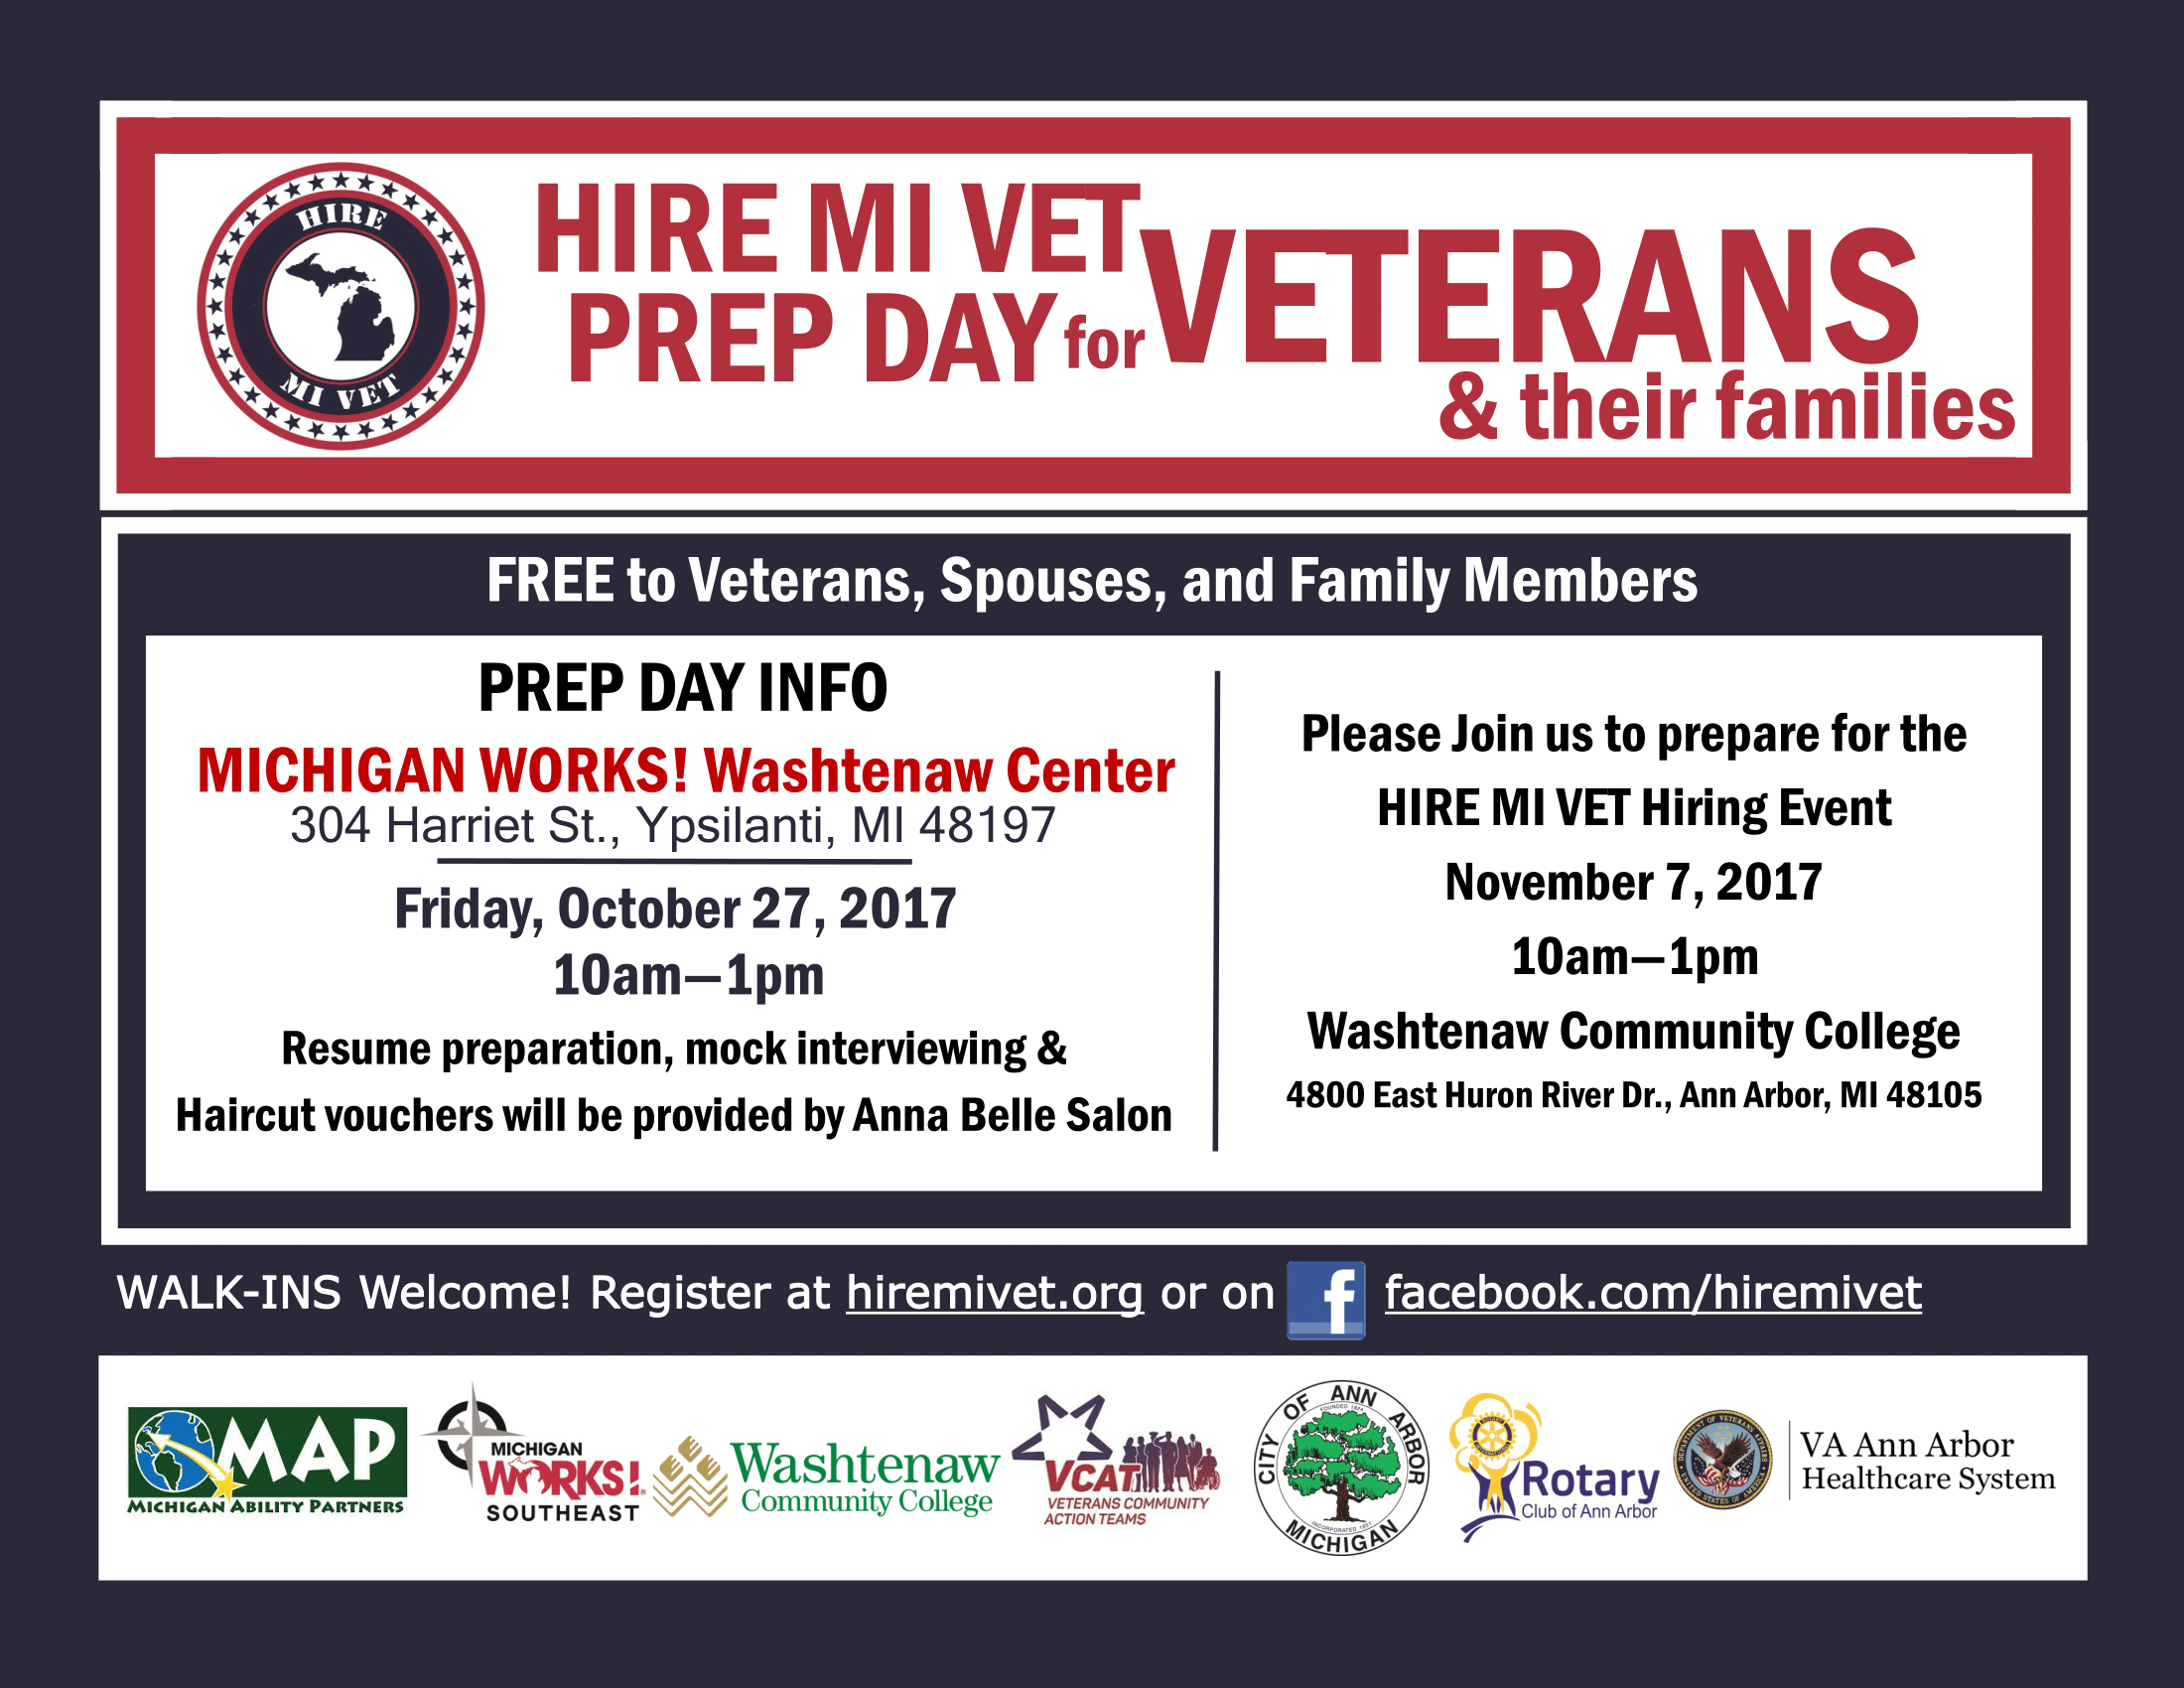 washtenaw prep day oct 27 2017 - Free Resume Help For Veterans